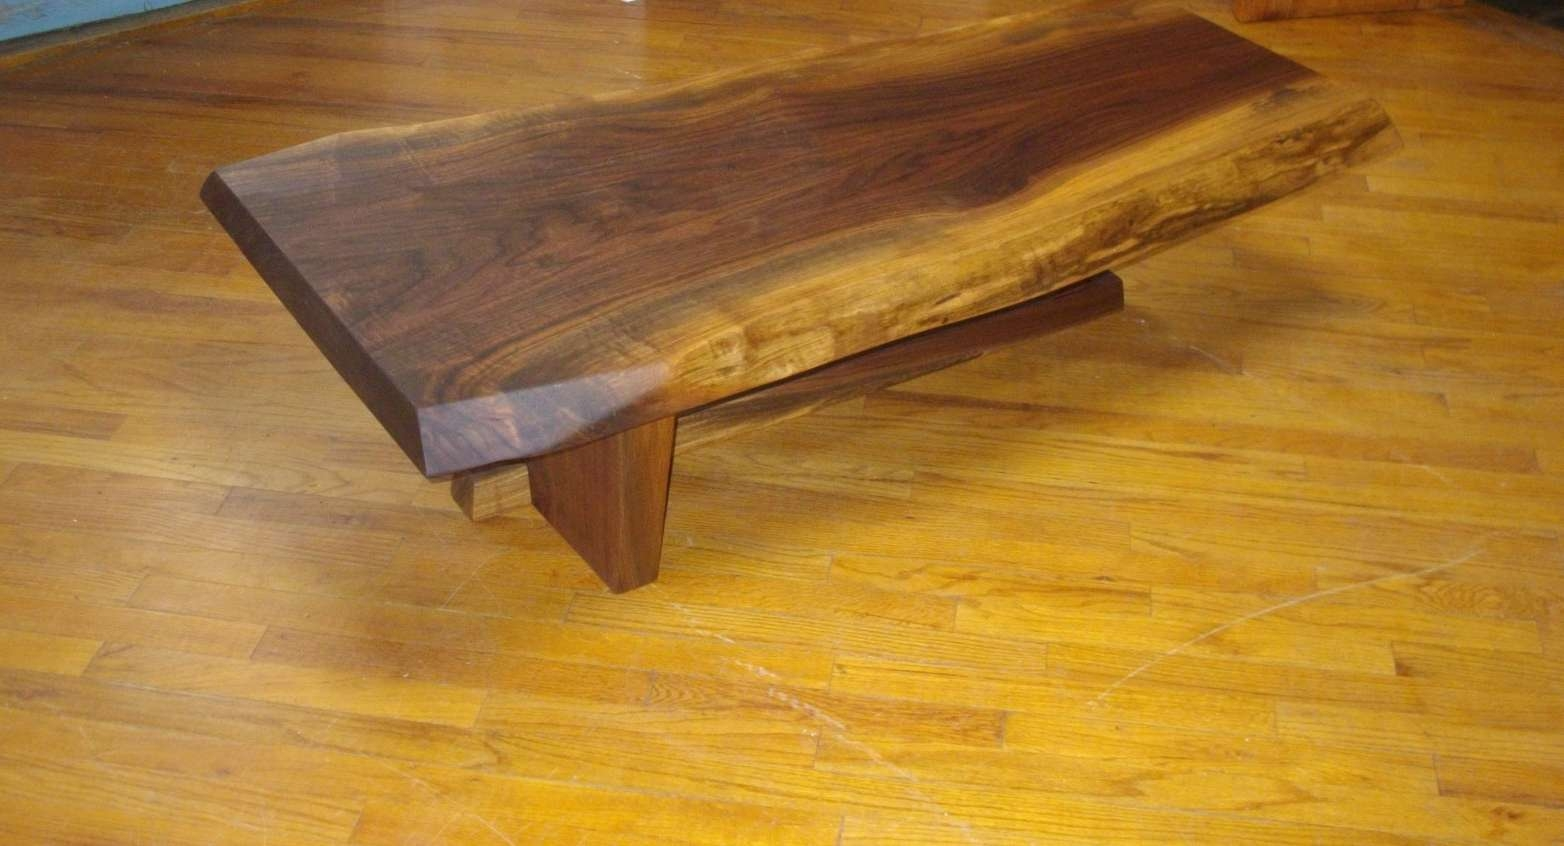 Preferred Low Oak Coffee Tables With Regard To Coffee Tables : Superb Large Low Oak Coffee Table Ravishing Large (View 17 of 20)